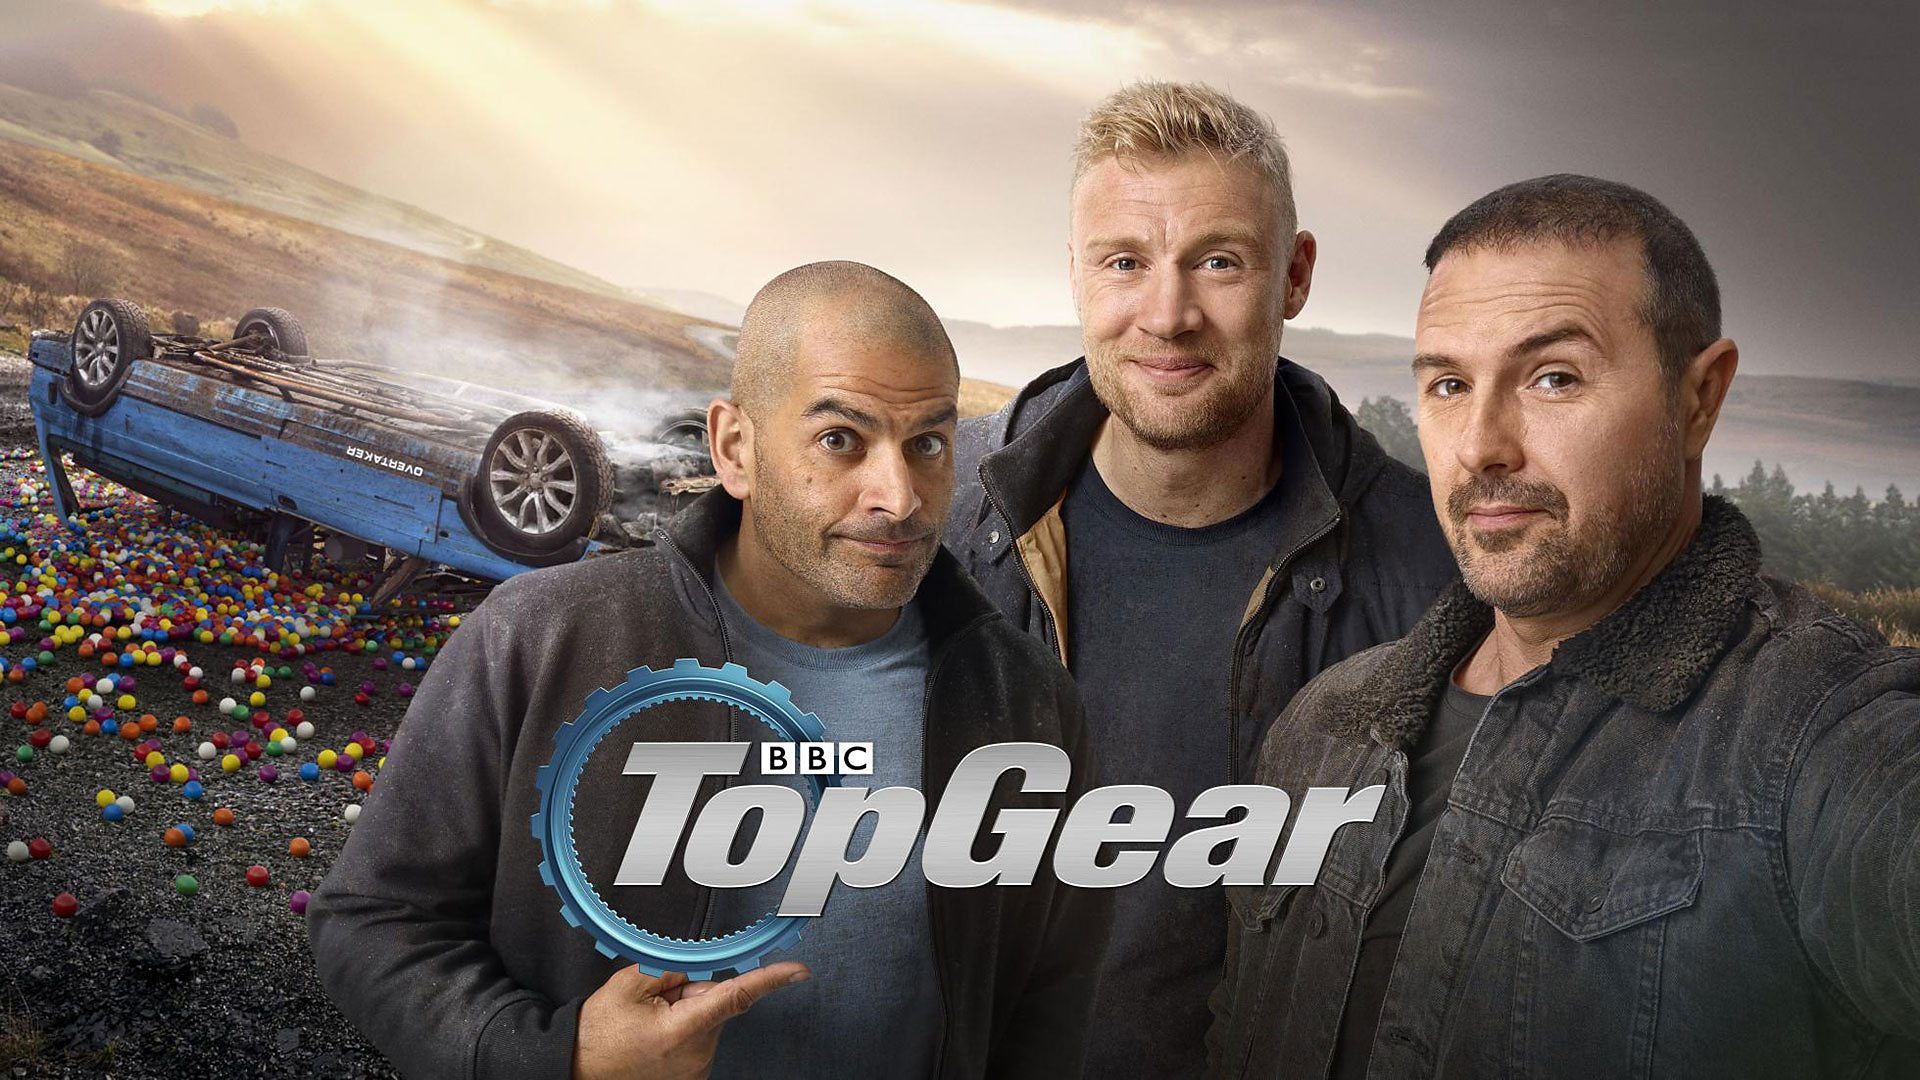 How To Buff A Car >> The best films and TV shows on BBC iPlayer (20th July 2019) | VODzilla.co | How to watch online ...